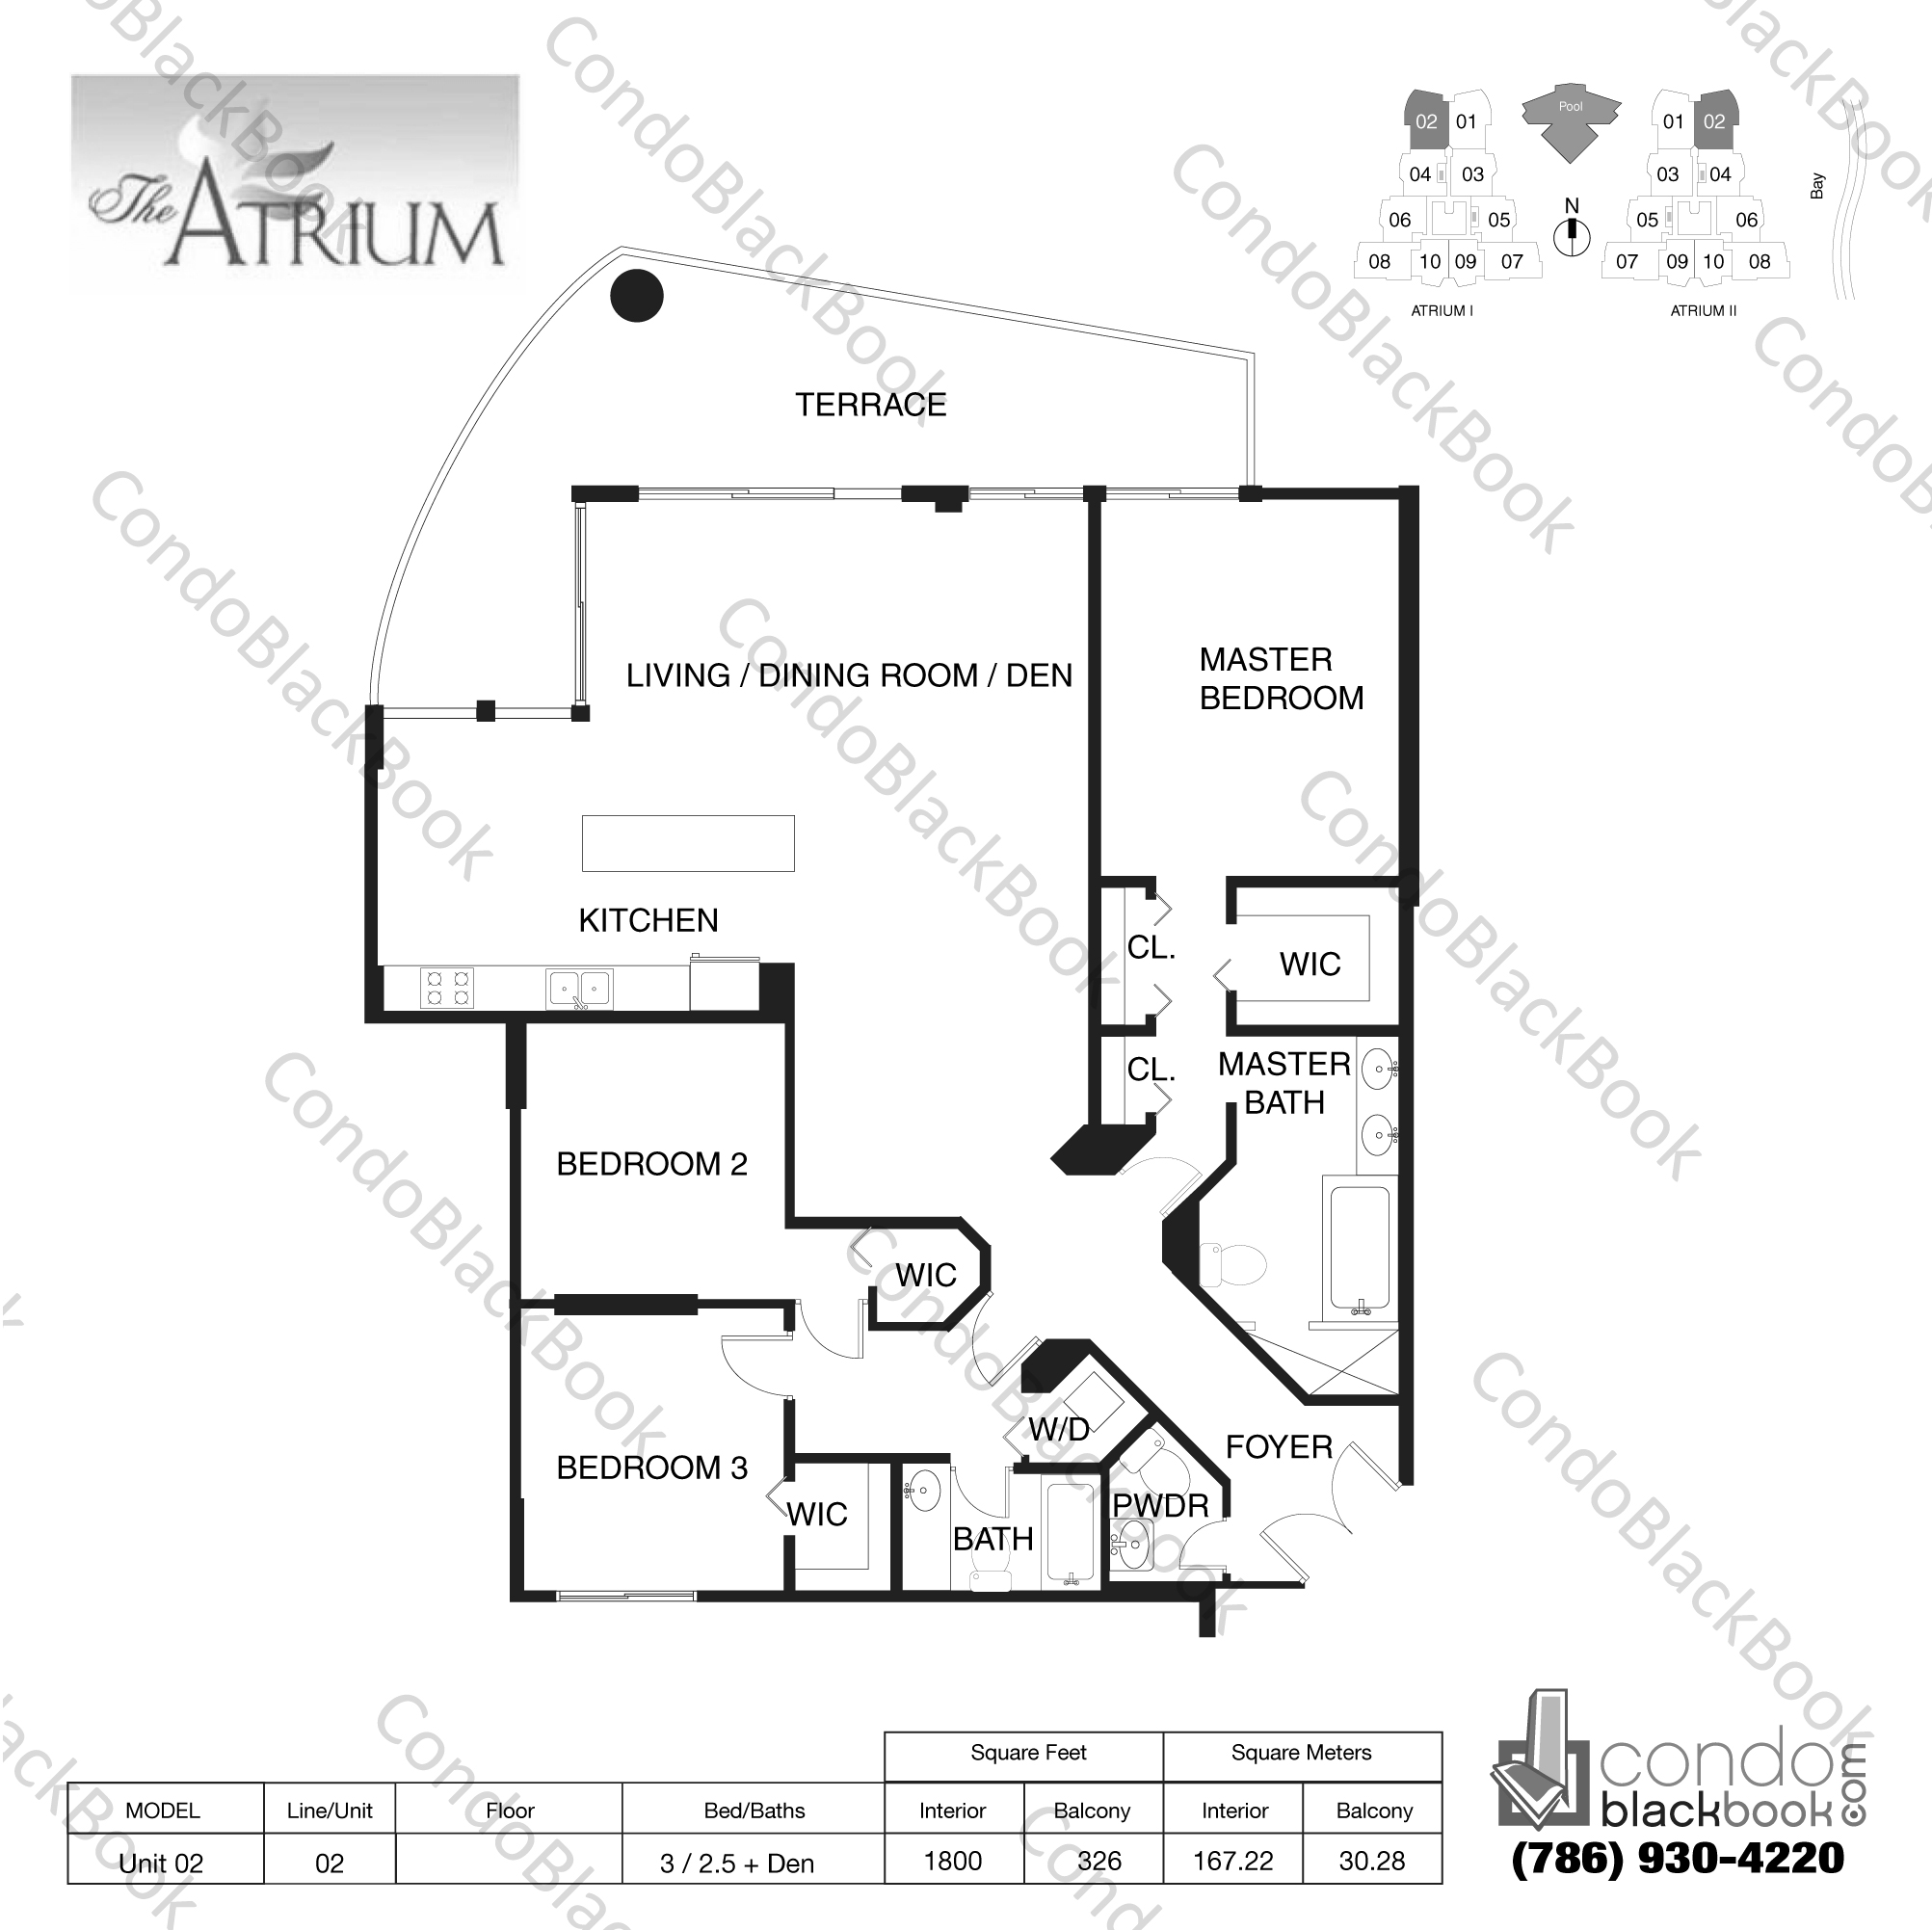 Floor plan for Atrium Aventura, model Unit 02, line 02, 3 / 2 .5 + Den bedrooms, 1800 sq ft